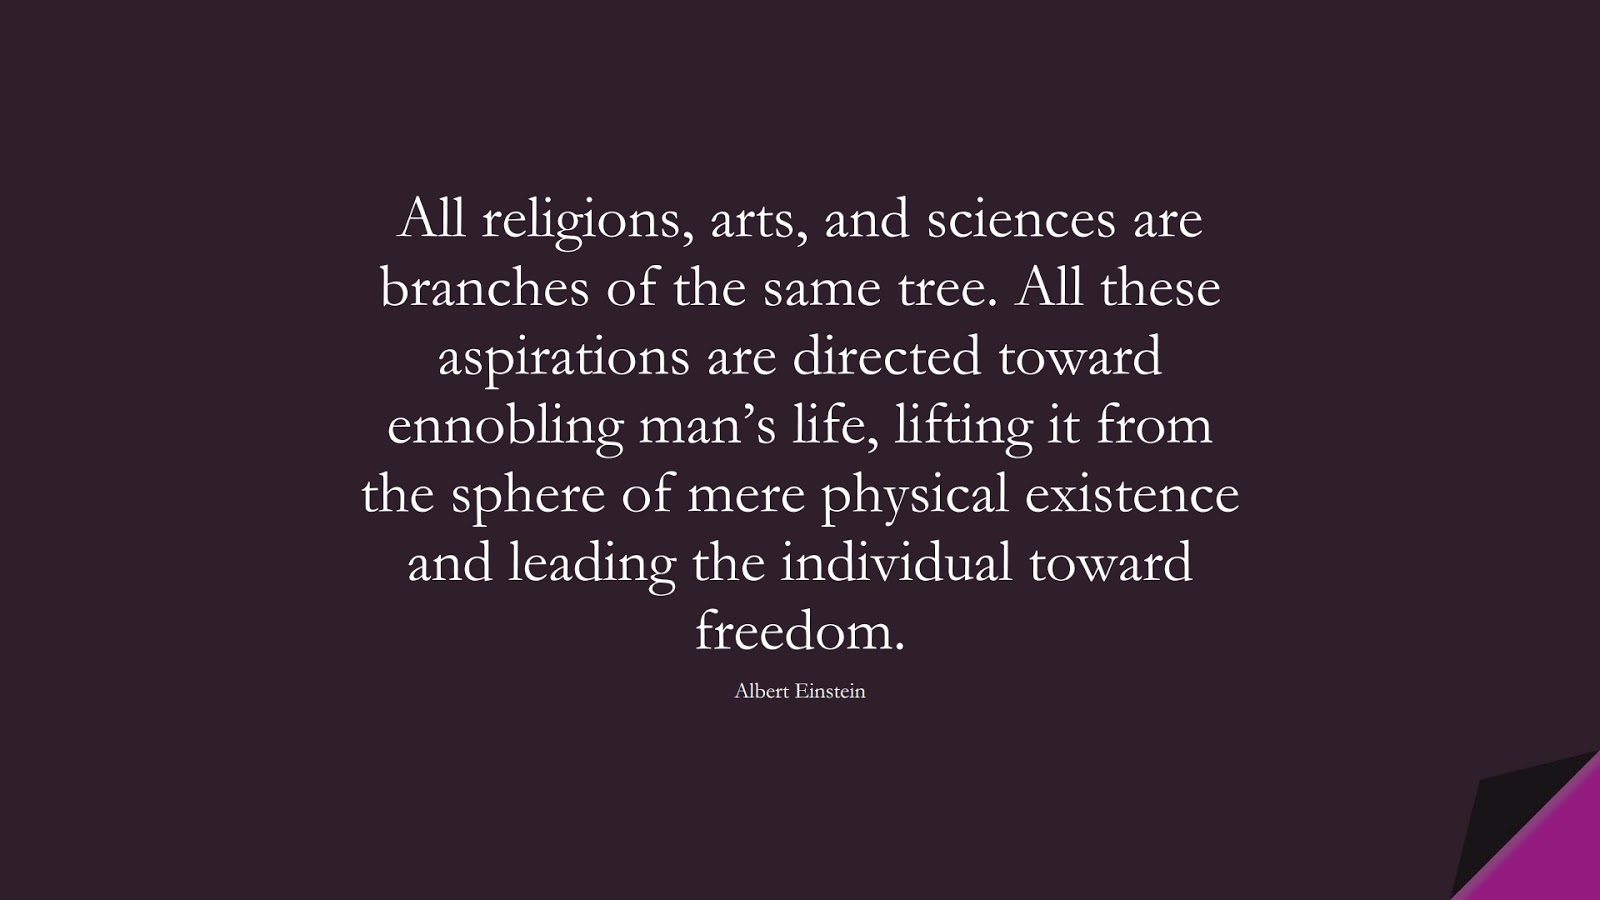 All religions, arts, and sciences are branches of the same tree. All these aspirations are directed toward ennobling man's life, lifting it from the sphere of mere physical existence and leading the individual toward freedom. (Albert Einstein);  #HumanityQuotes